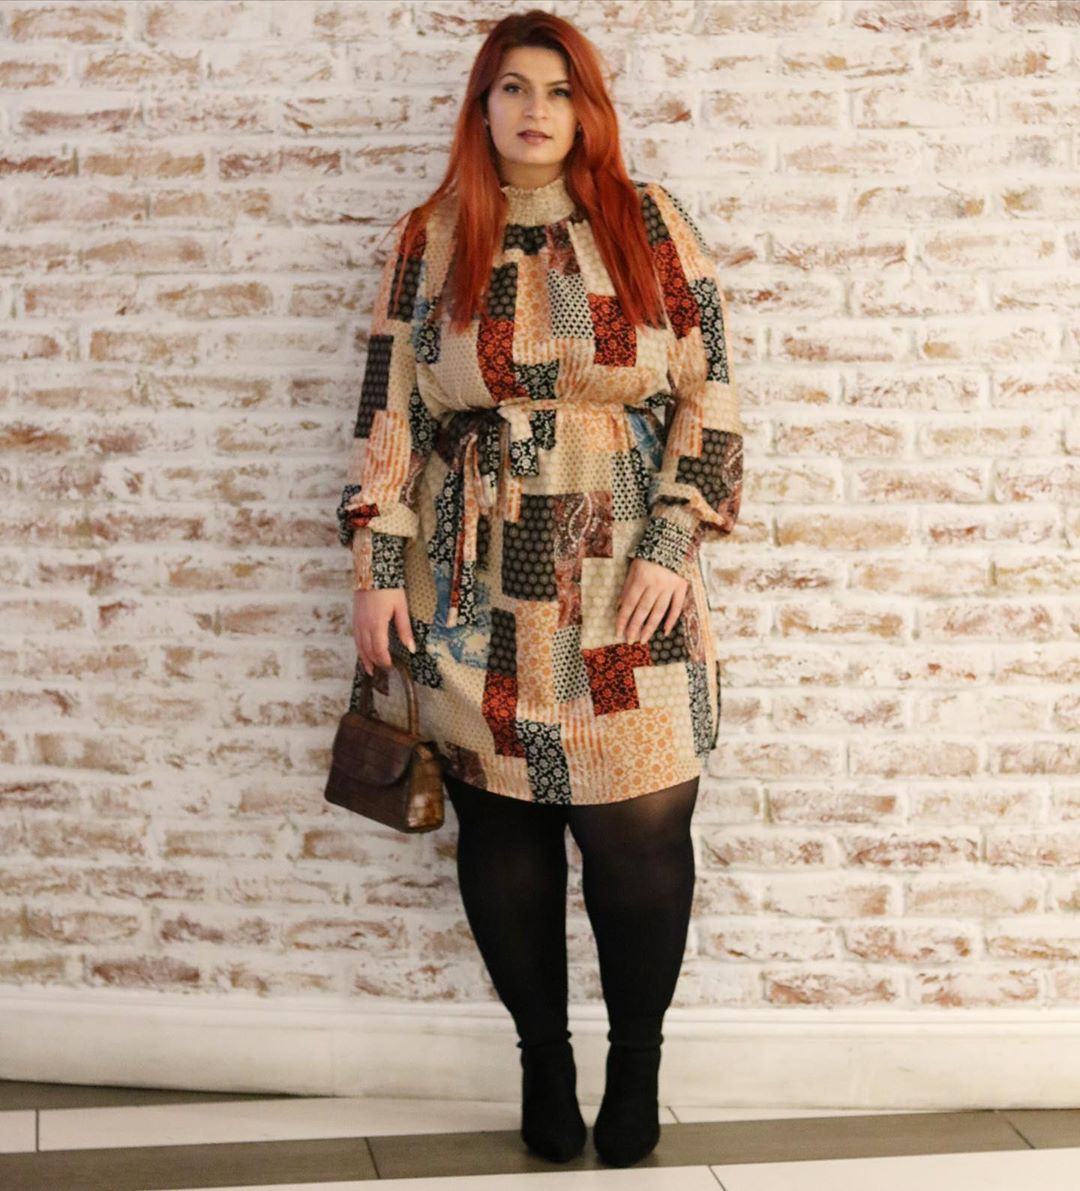 Beige and brown dress, costumes designs, street fashion